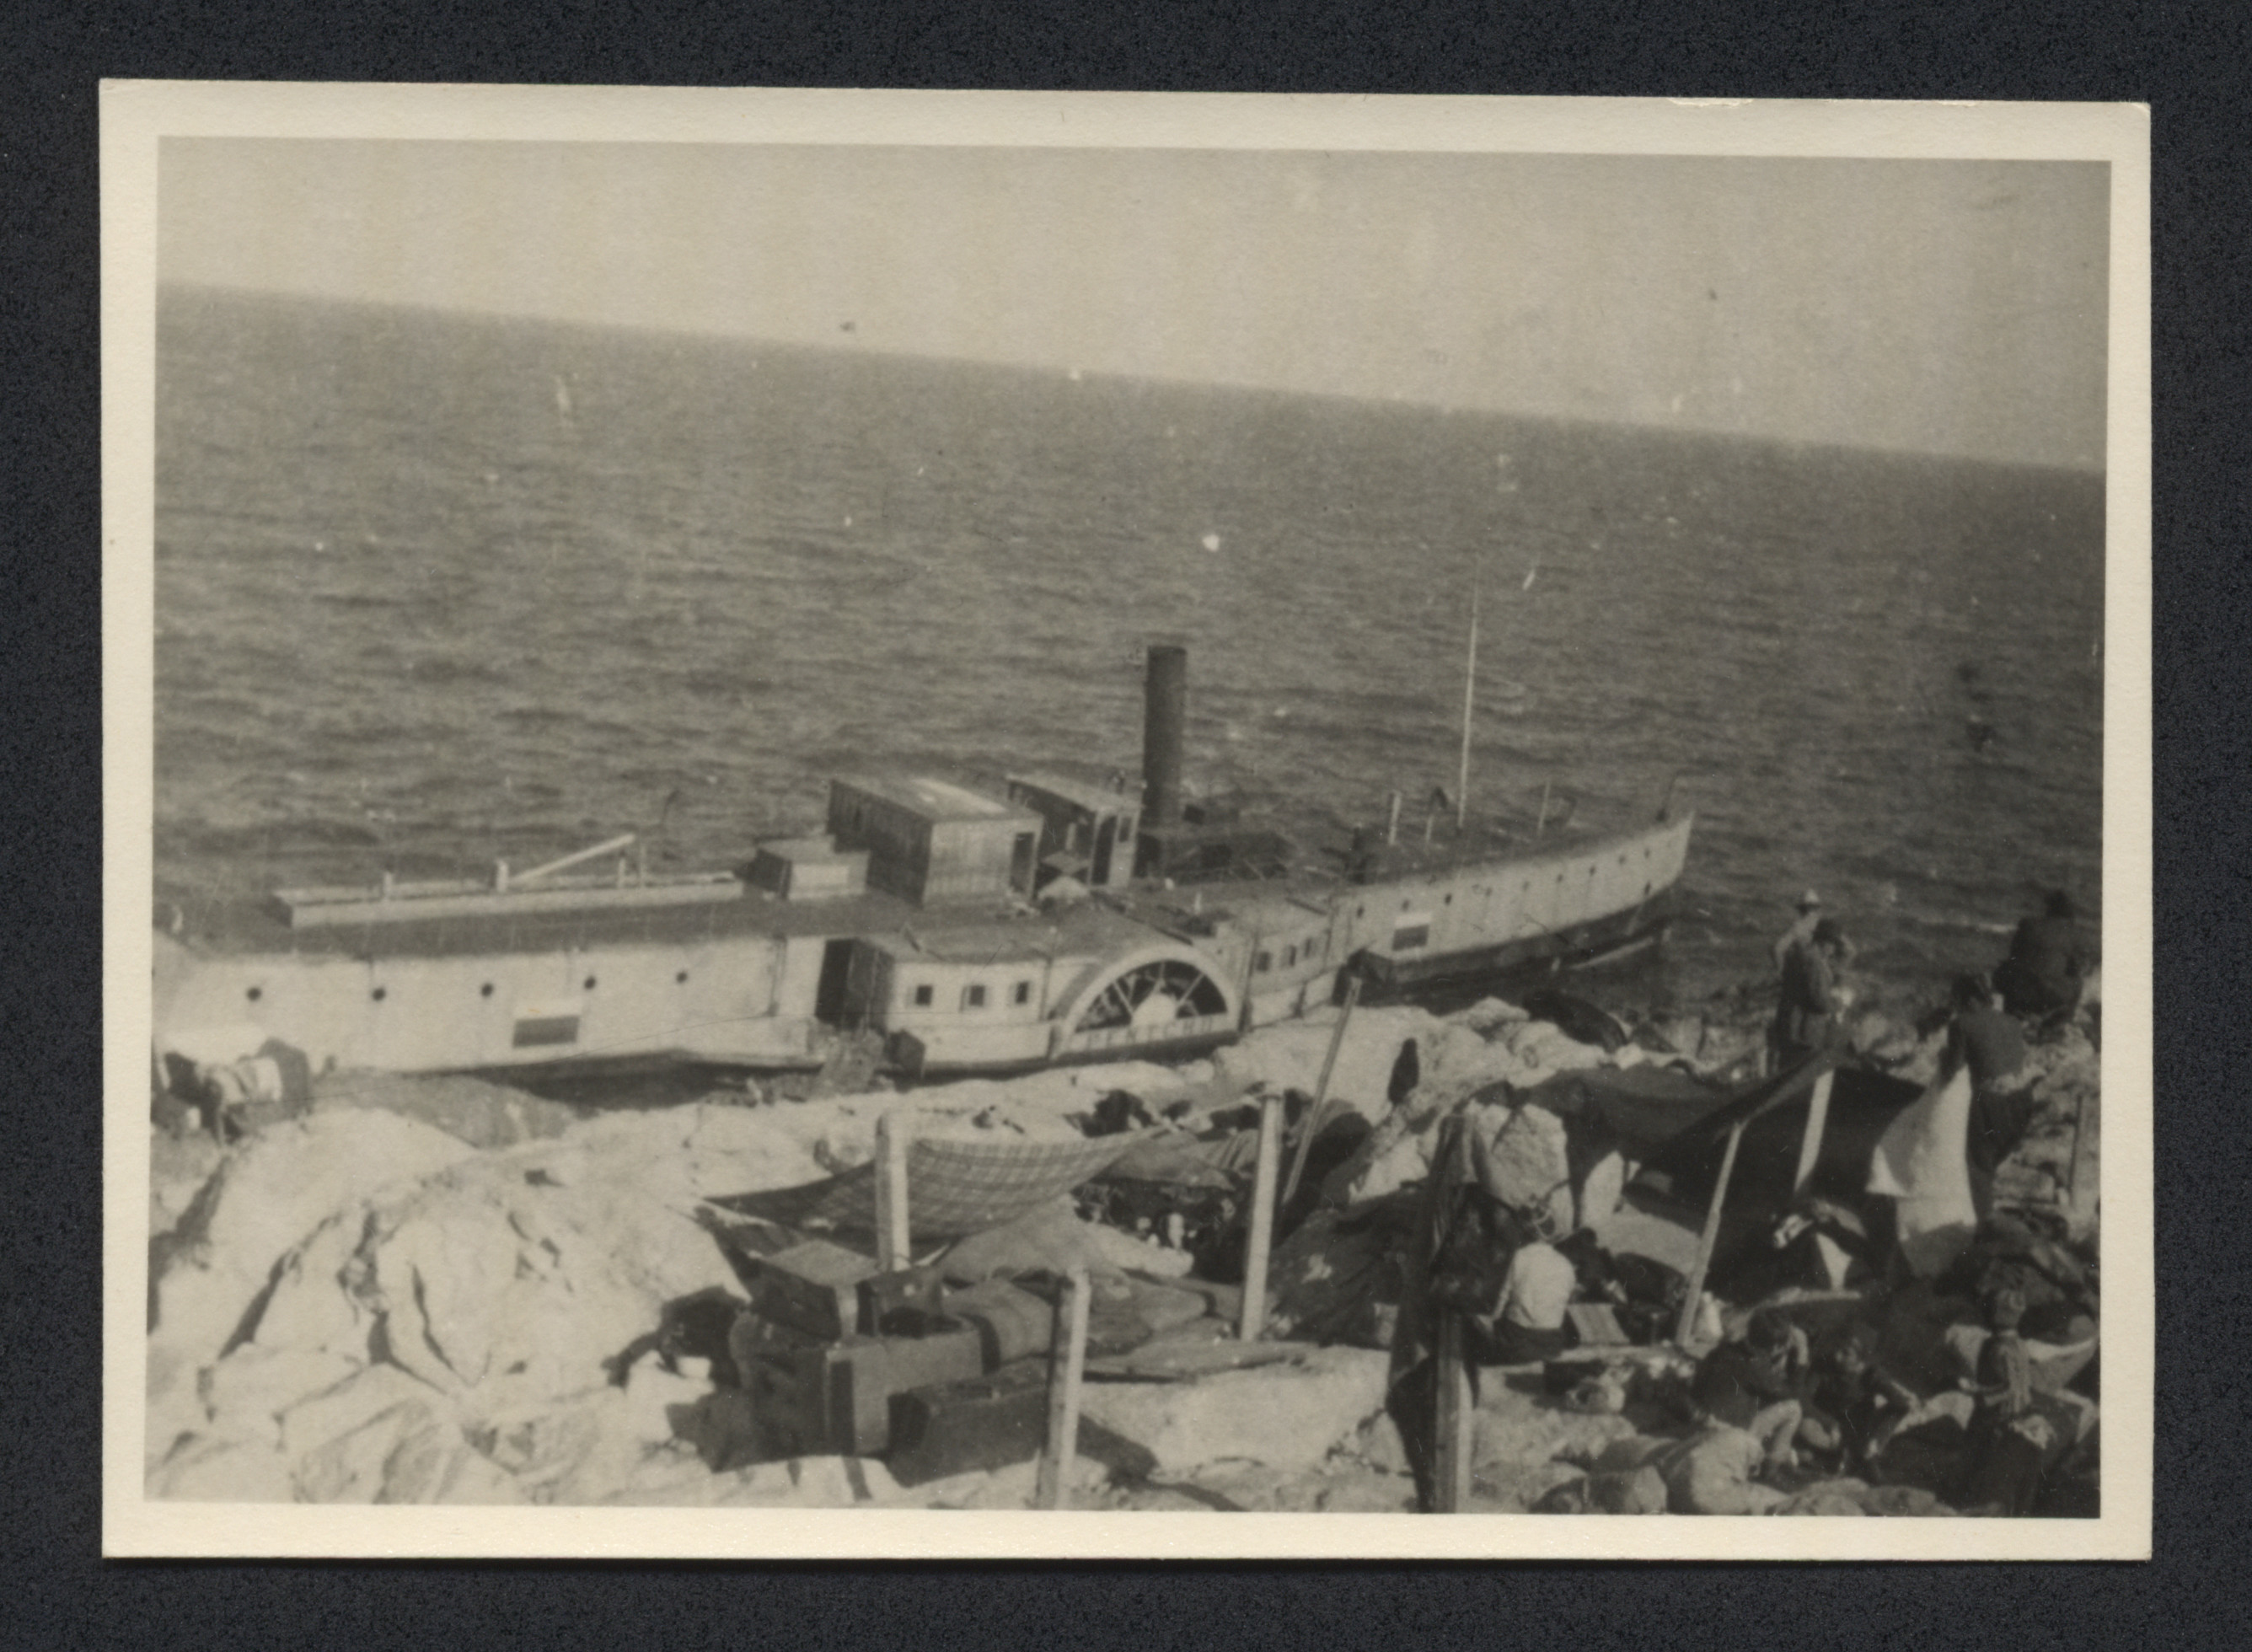 View of the shipwrecked Pentcho and the crude shelters built by the refugees on the island of Kamilonissi in the Aegean Sea.